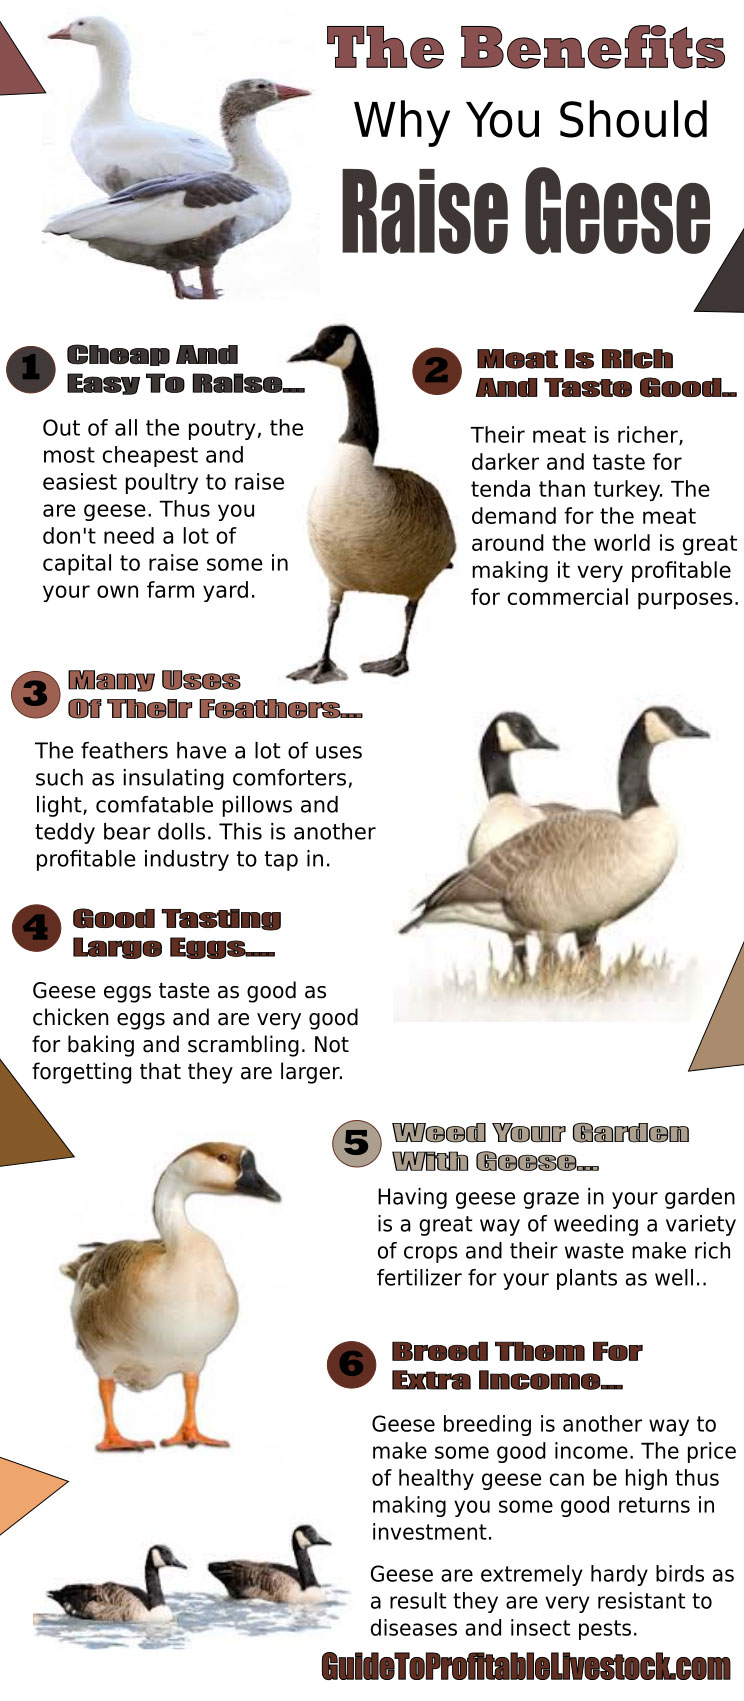 Reasons To Raise Geese